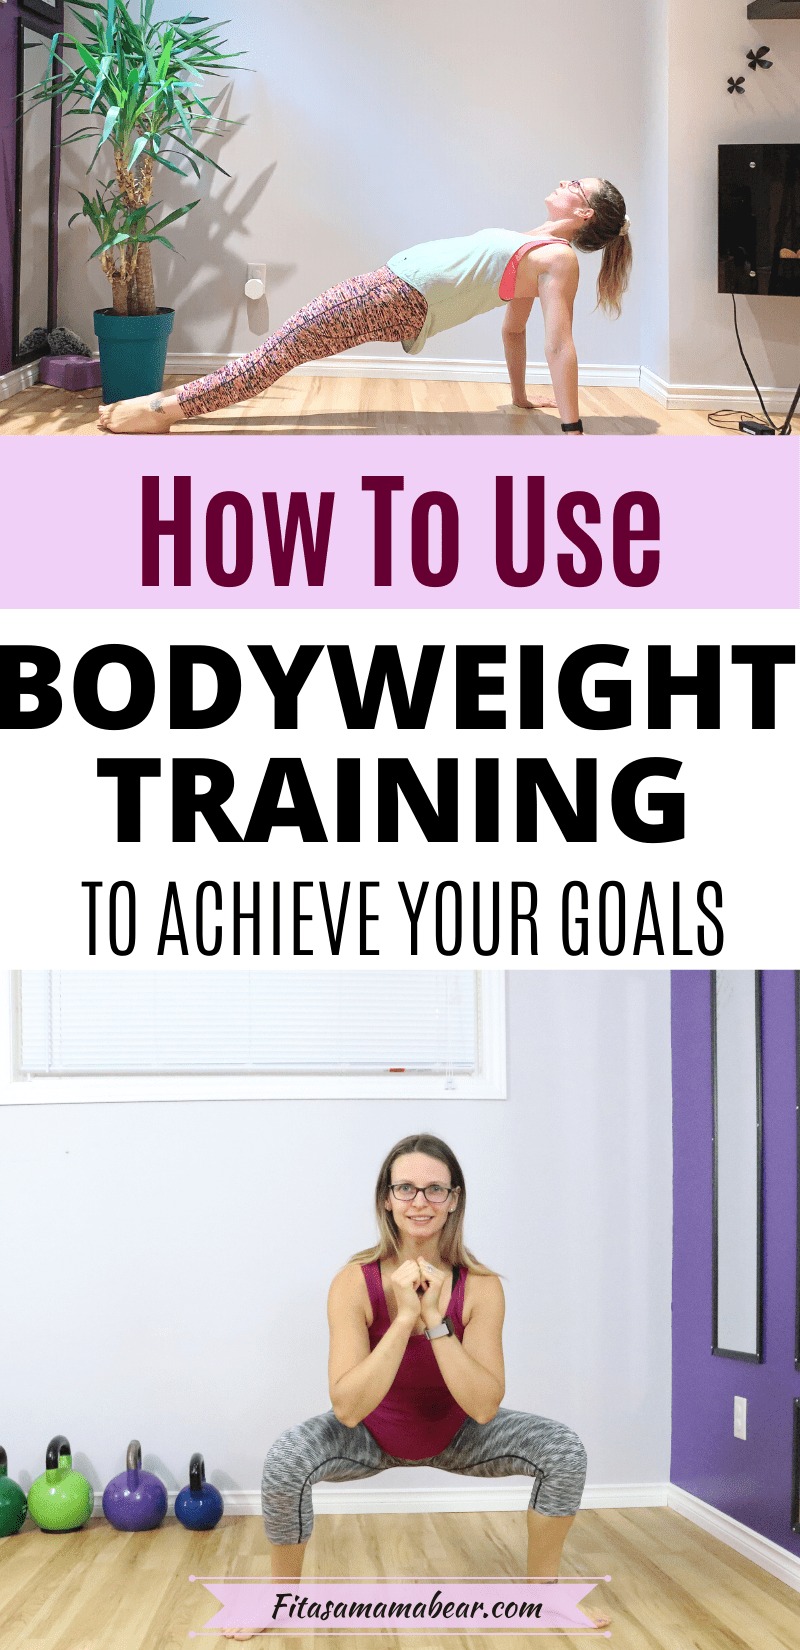 Pinterest image with text: two images of a woman performing bodyweight exercises with text about bodyweight training